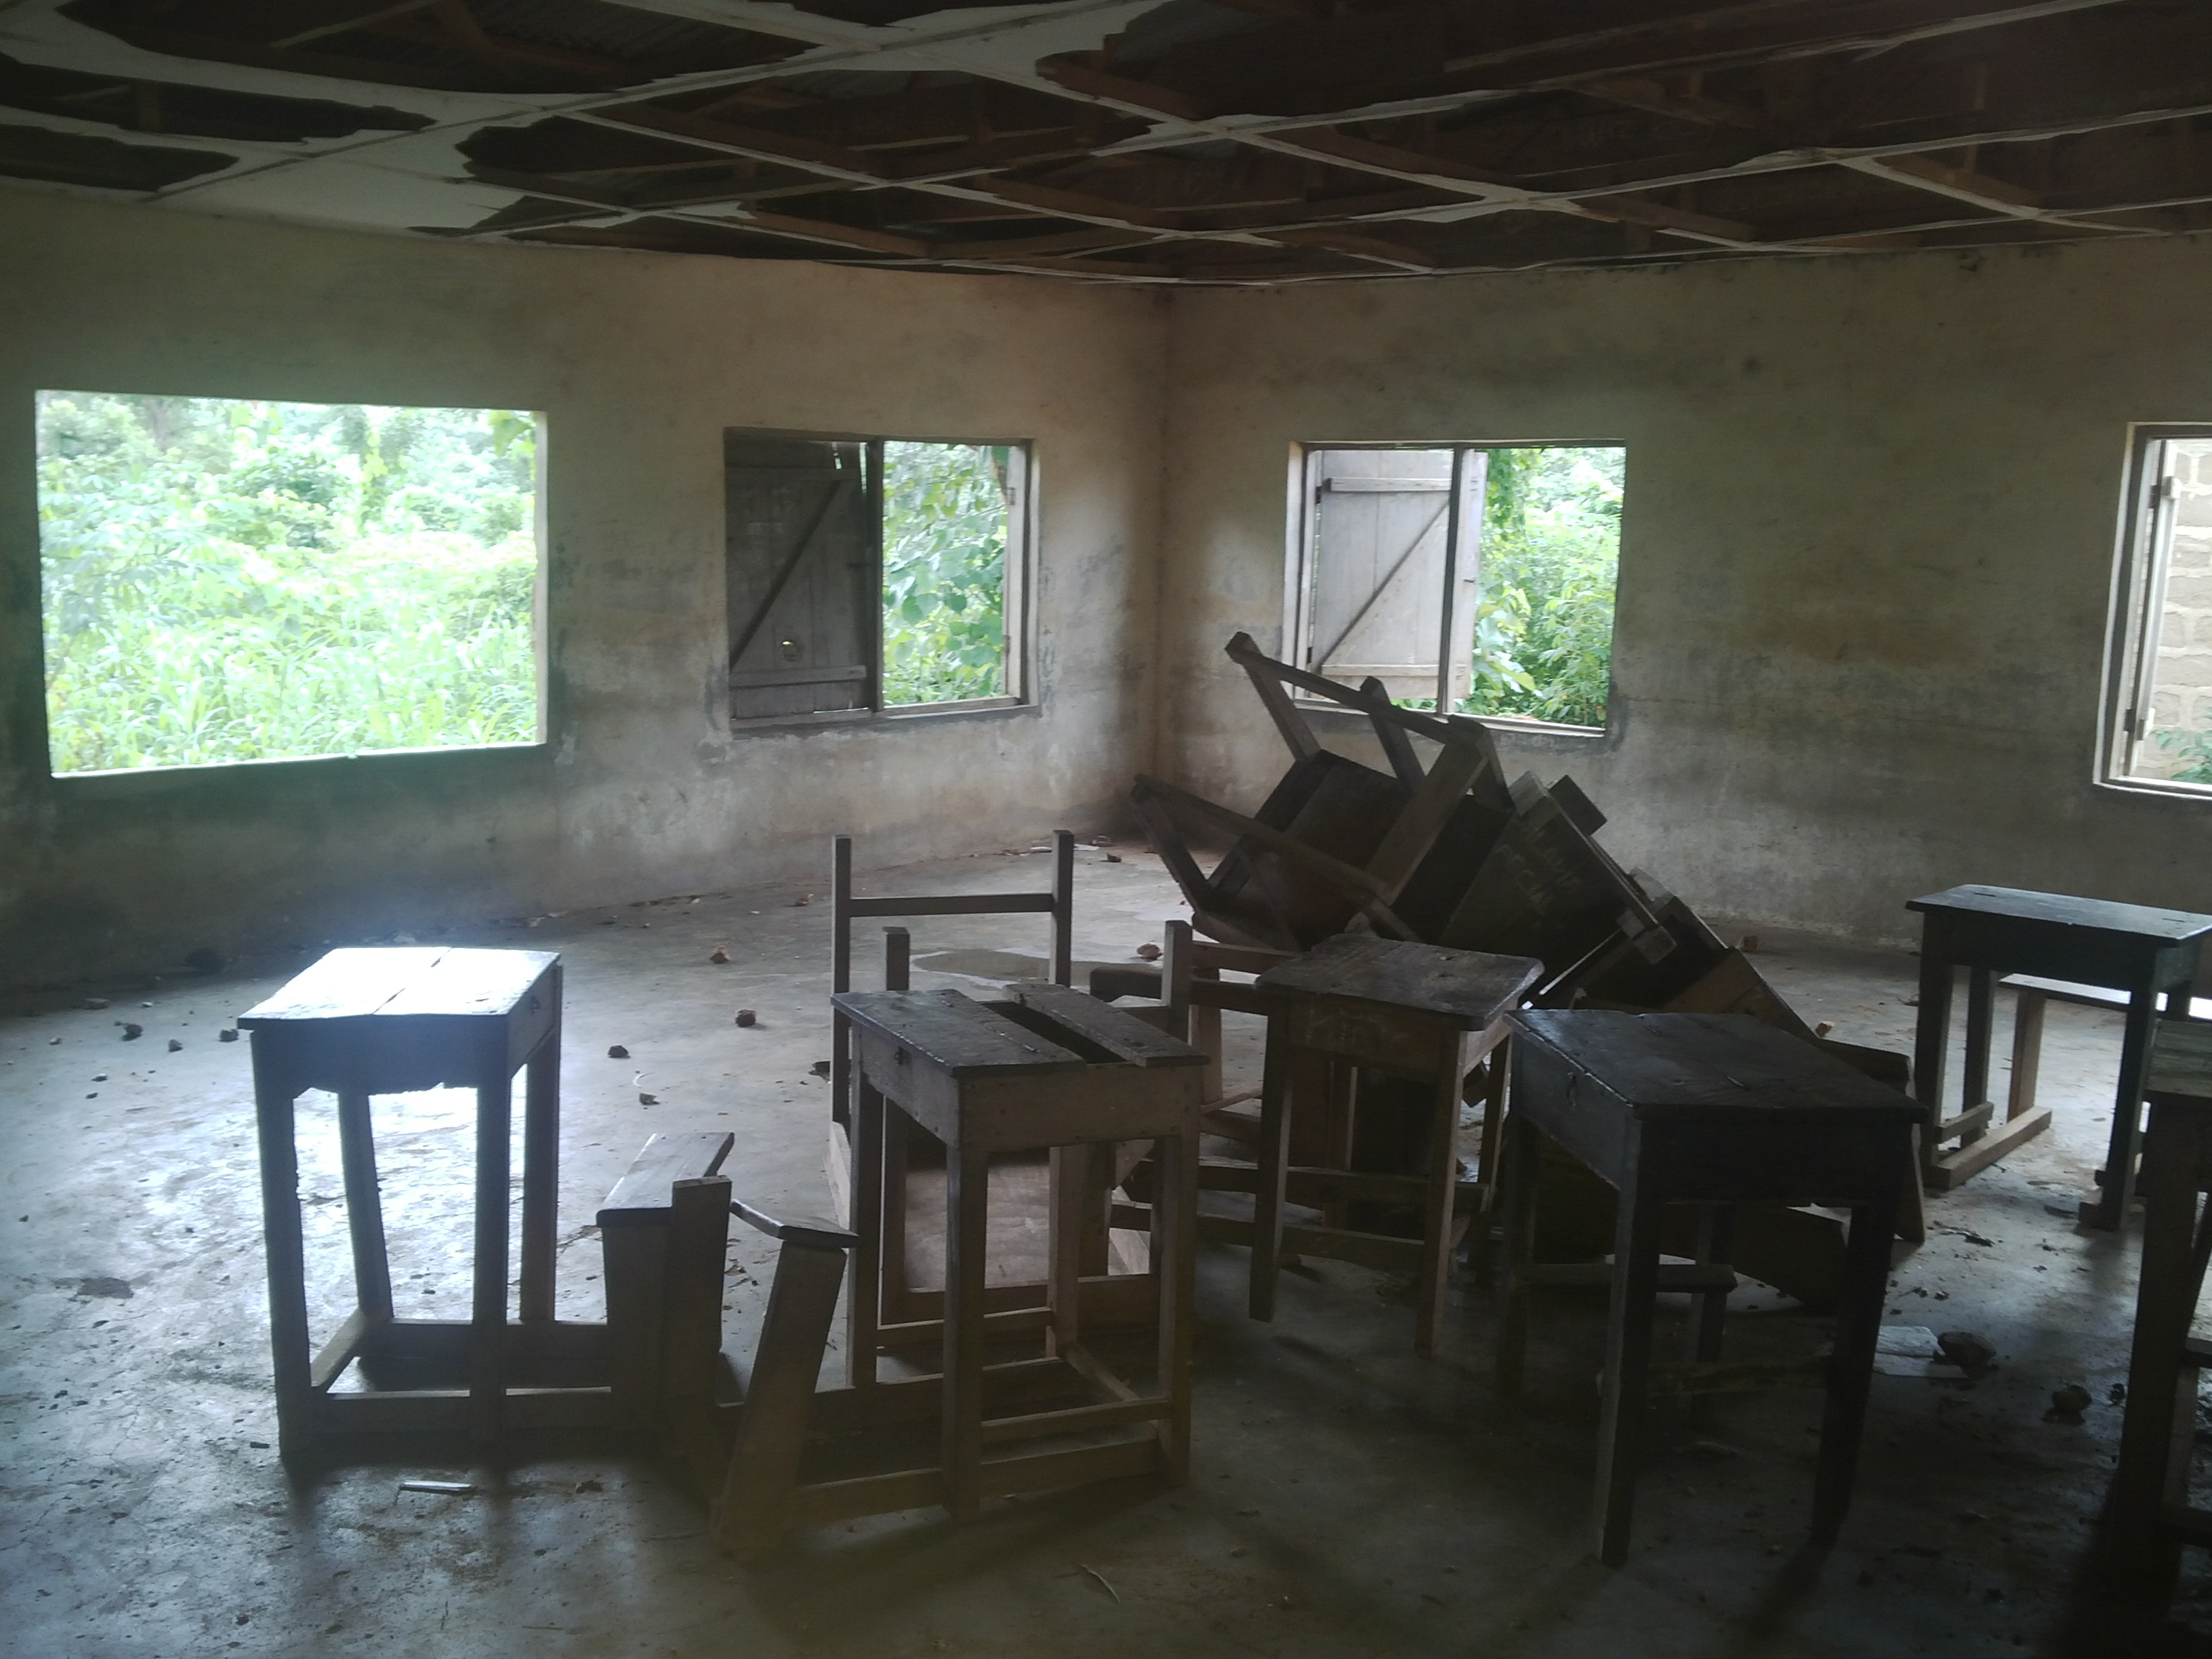 one of the classrooms still in use